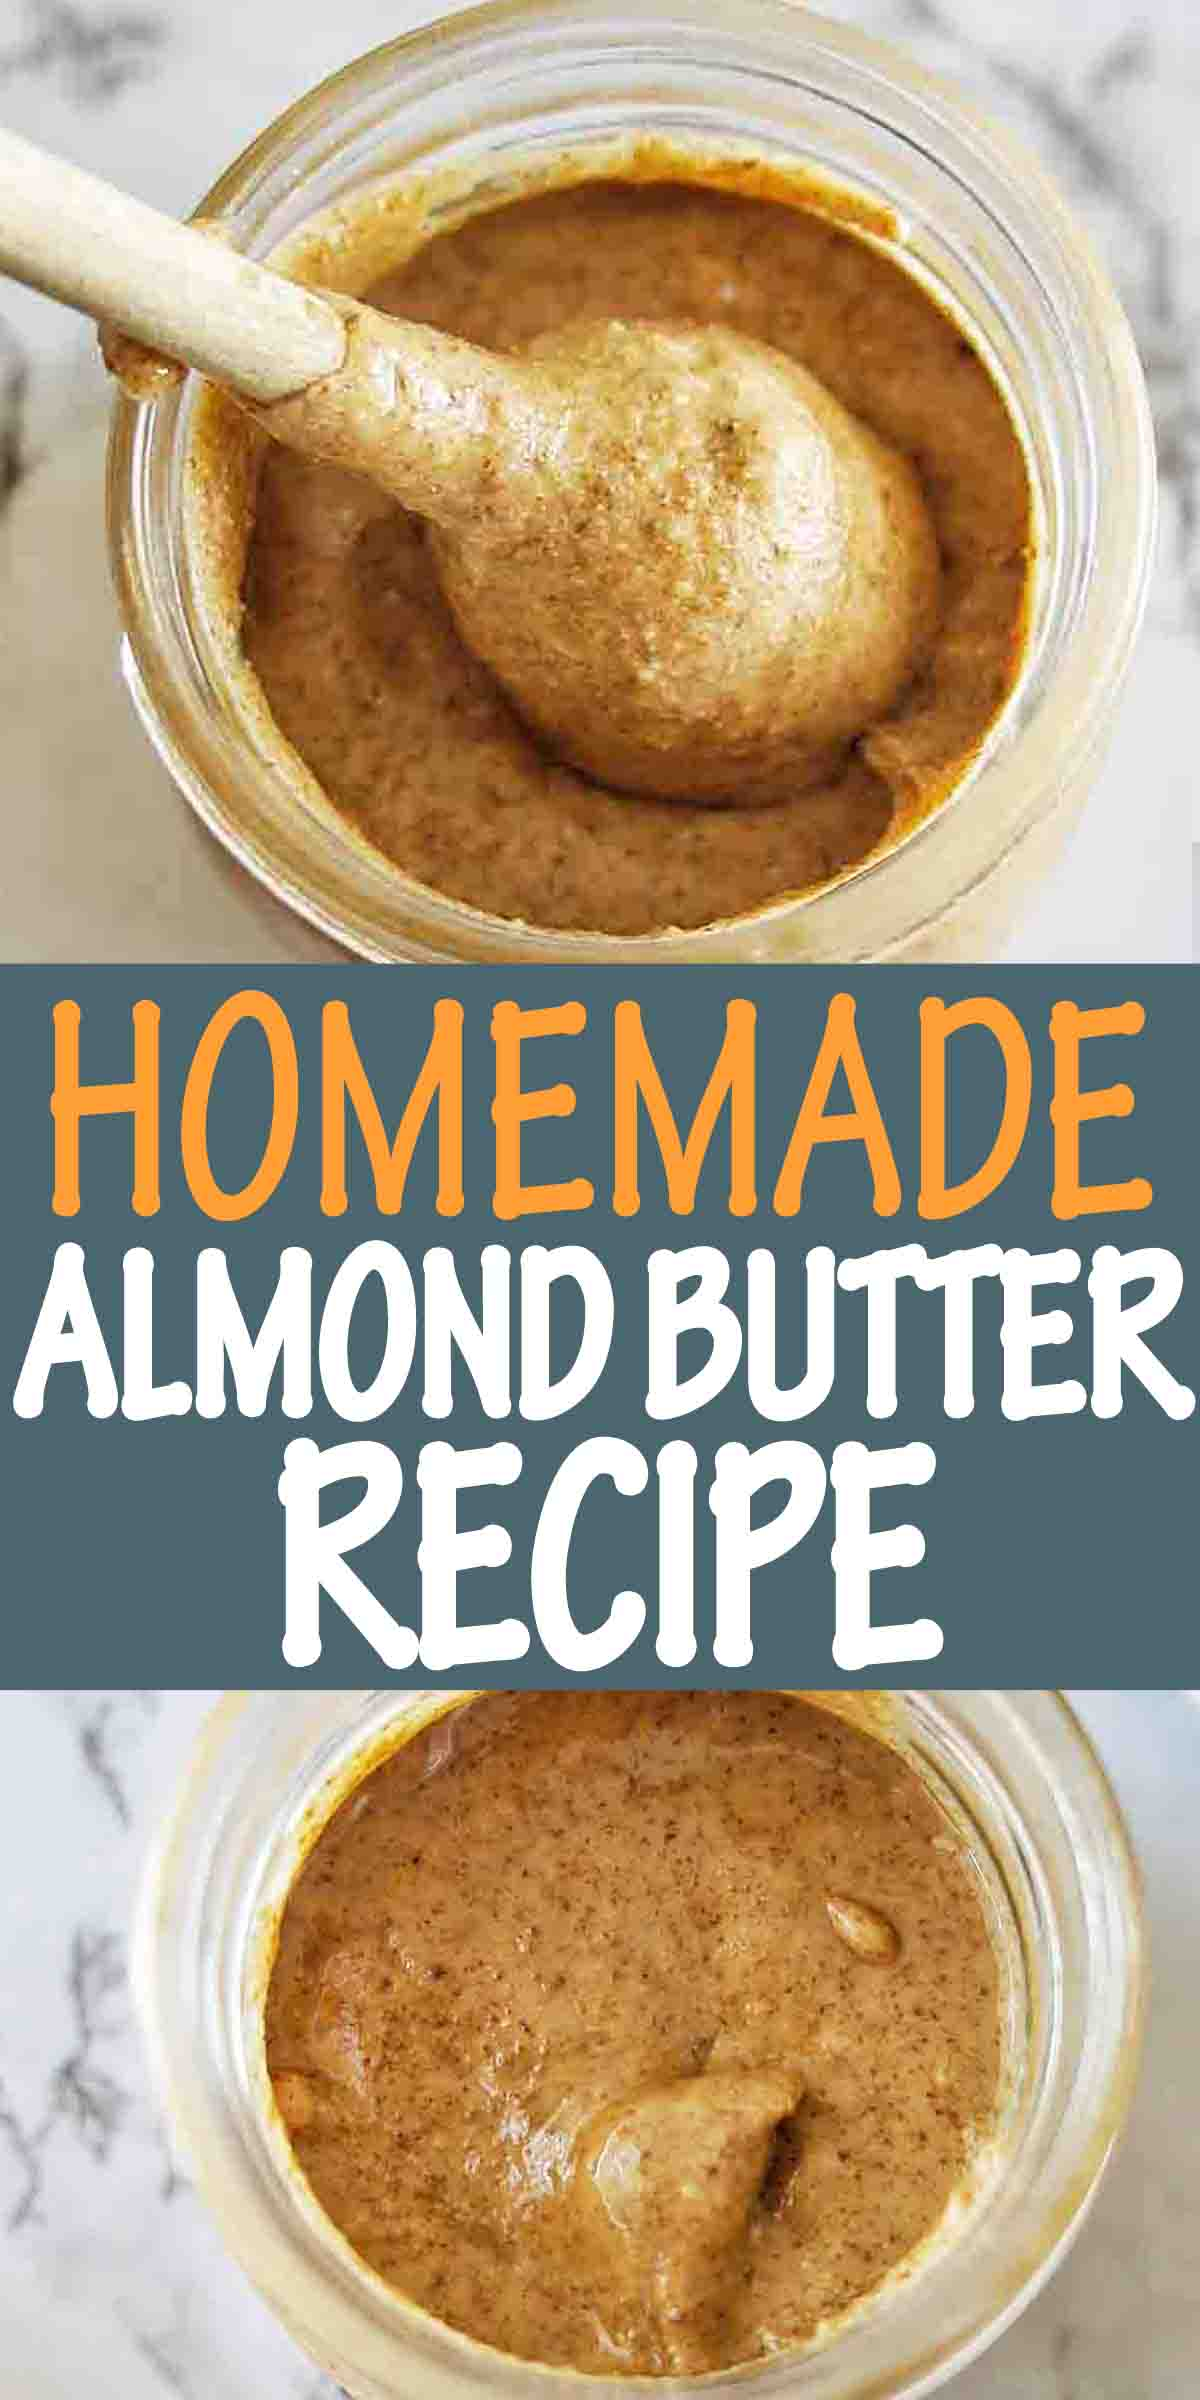 Homemade Almond Butter recipe with text over lay